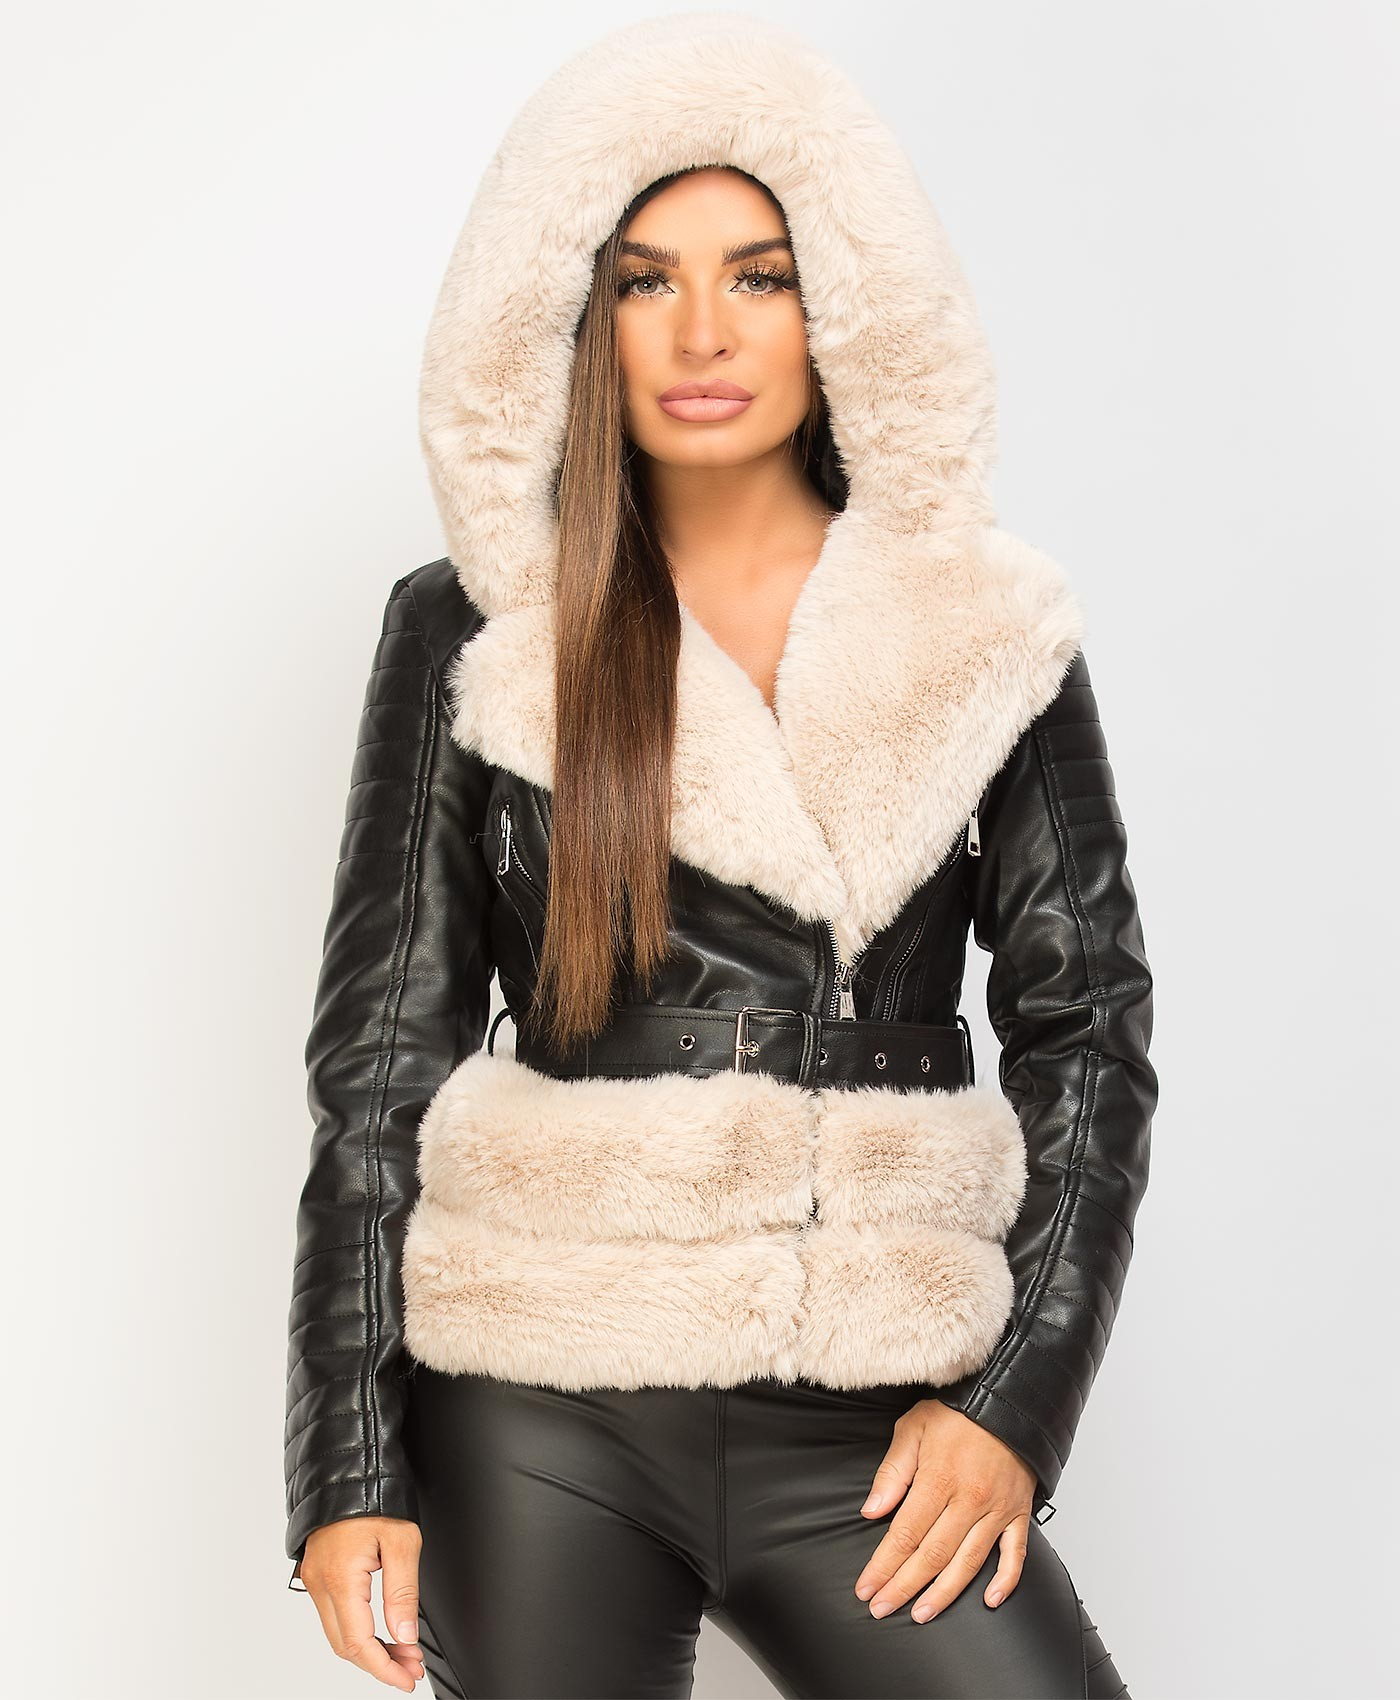 Black-Beige-PU-PVC-Faux-Fur-Hooded-Belted-Biker-Jacket-1